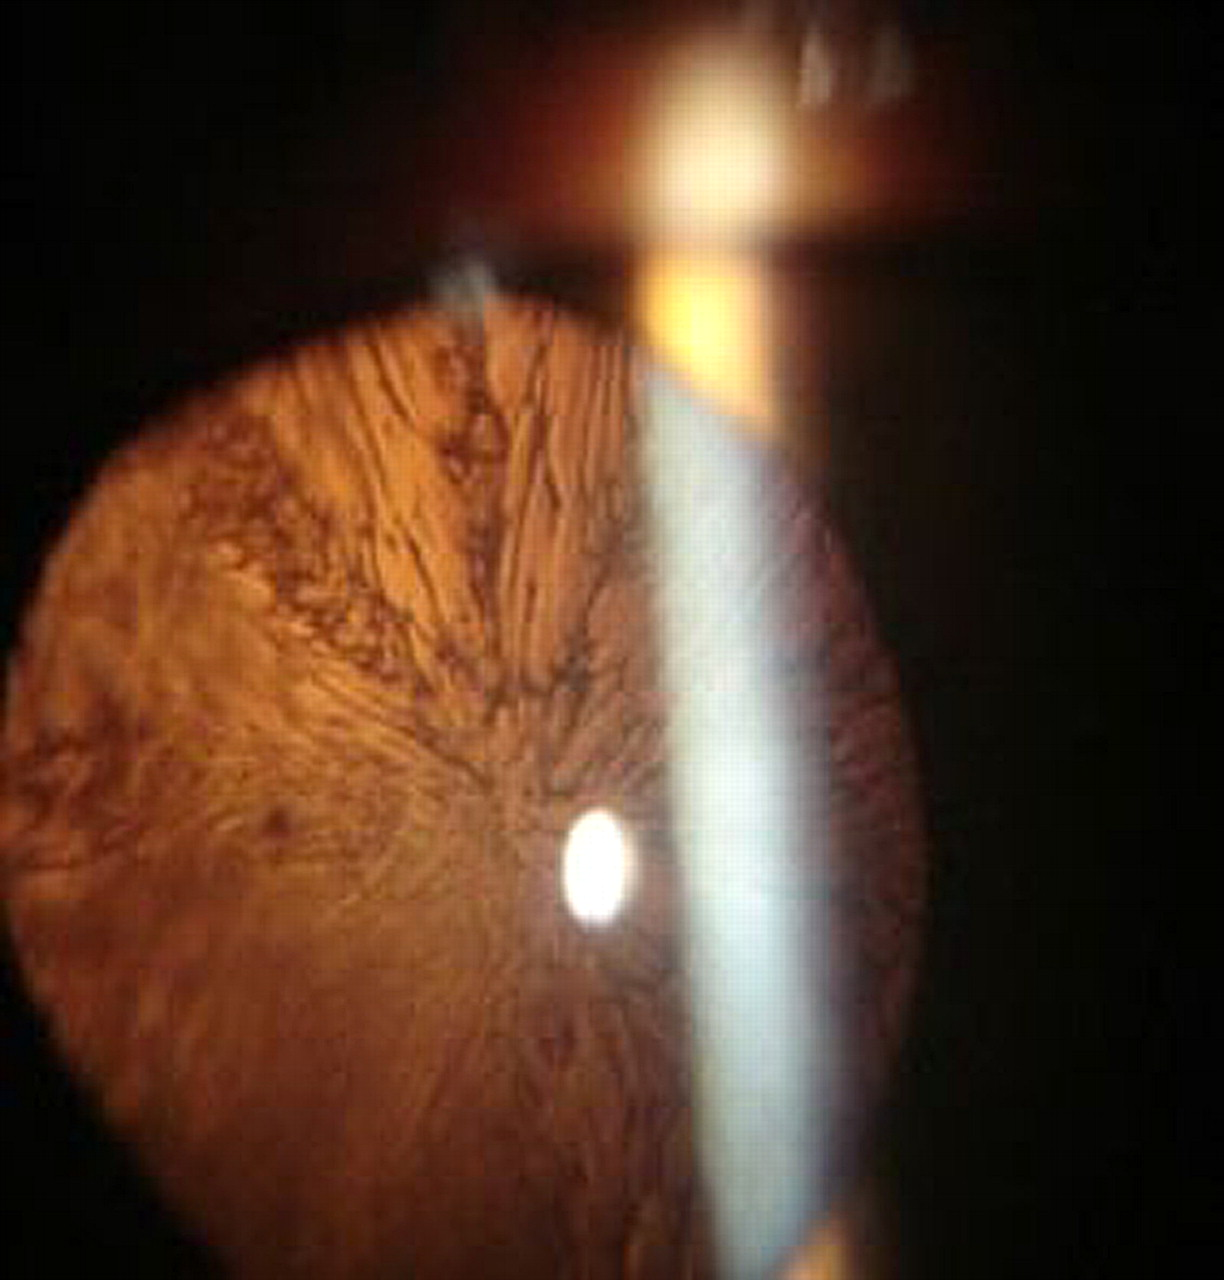 Morphology Of Traumatic Cataract Does It Play A Role In Final